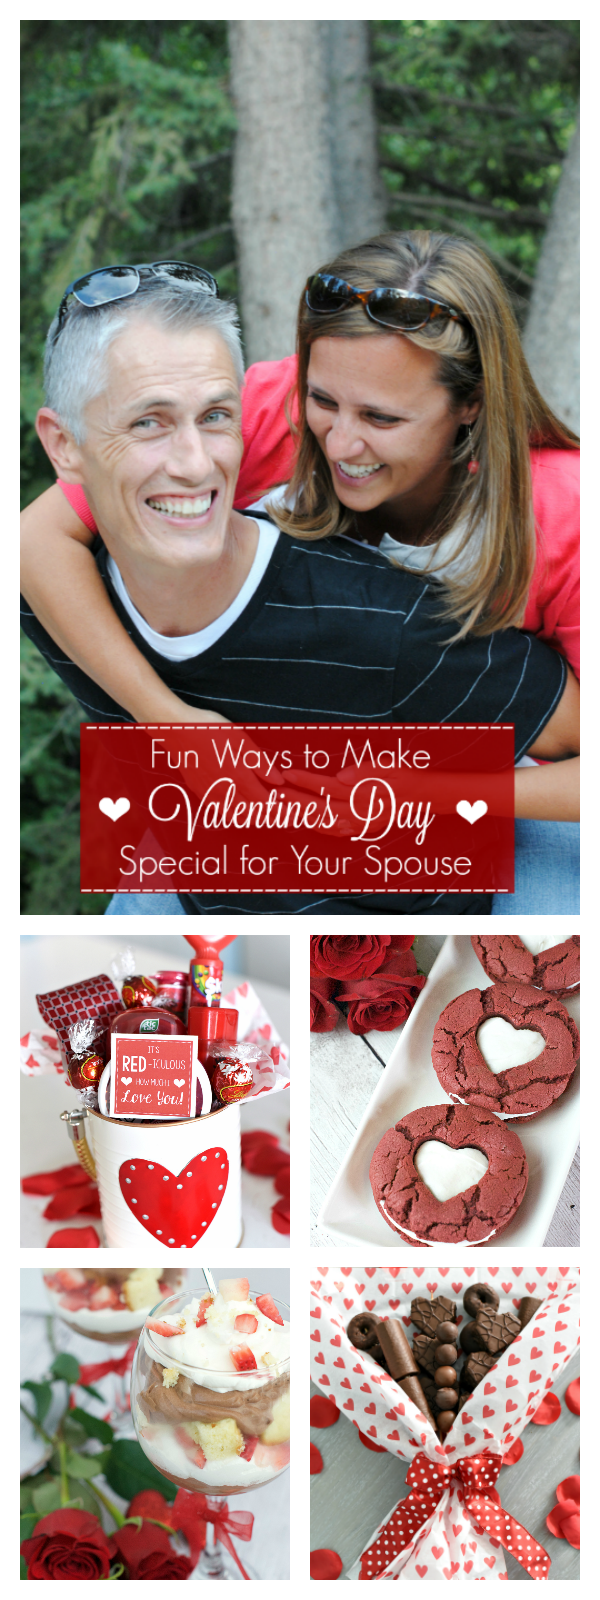 Fun Ways to Make Valentine's Day Special for Your Spouse-This list of great ideas of things to do for your husband for Valentine's Day (or your wife) will make this holiday extra special. Valentine's gifts, dates, treats and other great Valentine's Day ideas #valentinesday #valentinesdaygifts #valentinesforhim